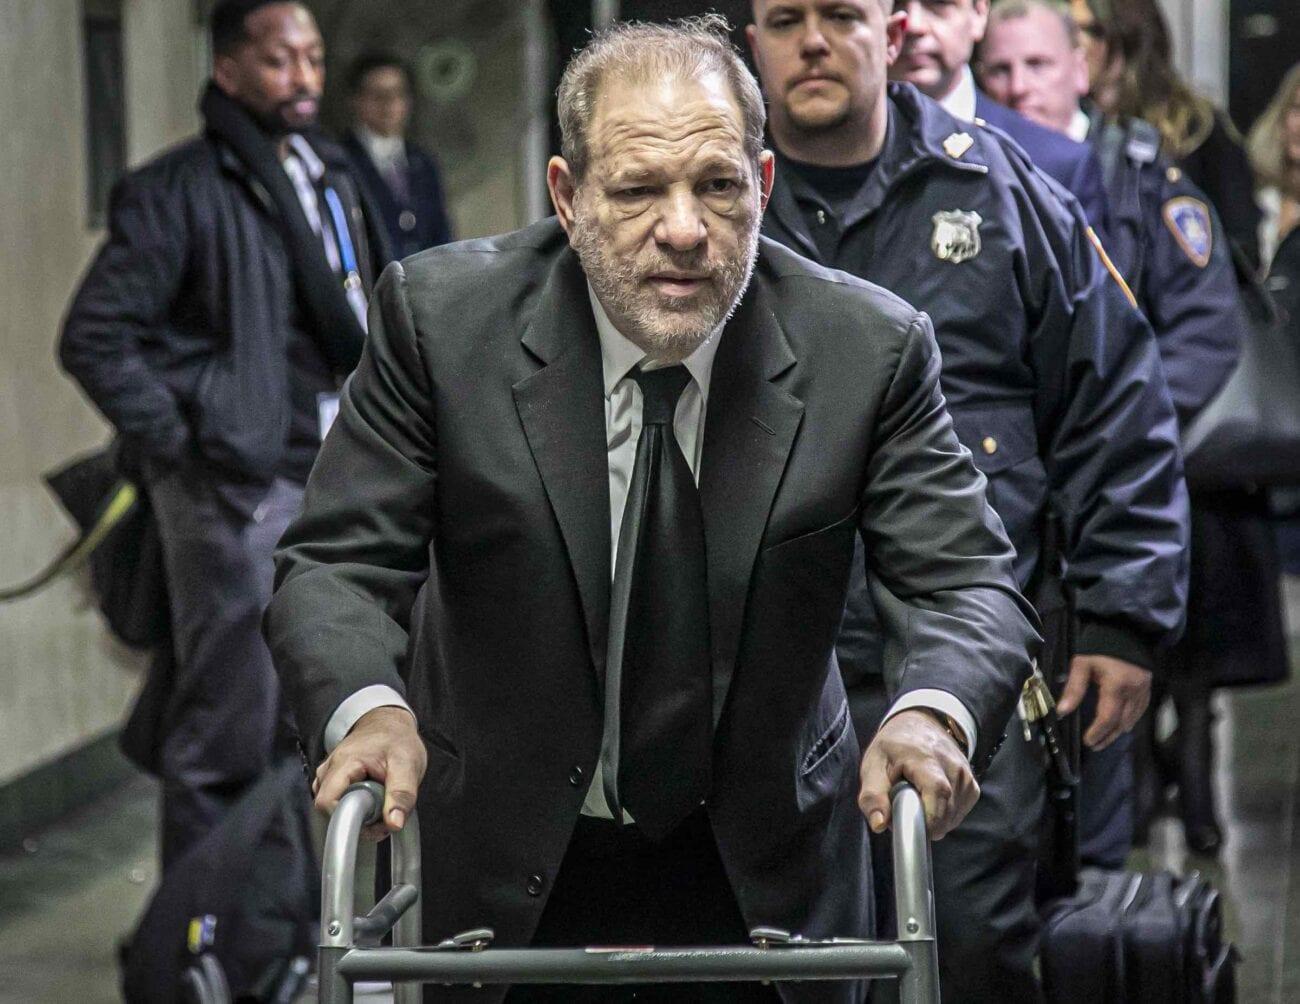 Disgraced producer Harvey Weinstein is now under close monitorization in his cell. What's going to happen after Weinstein's trial?